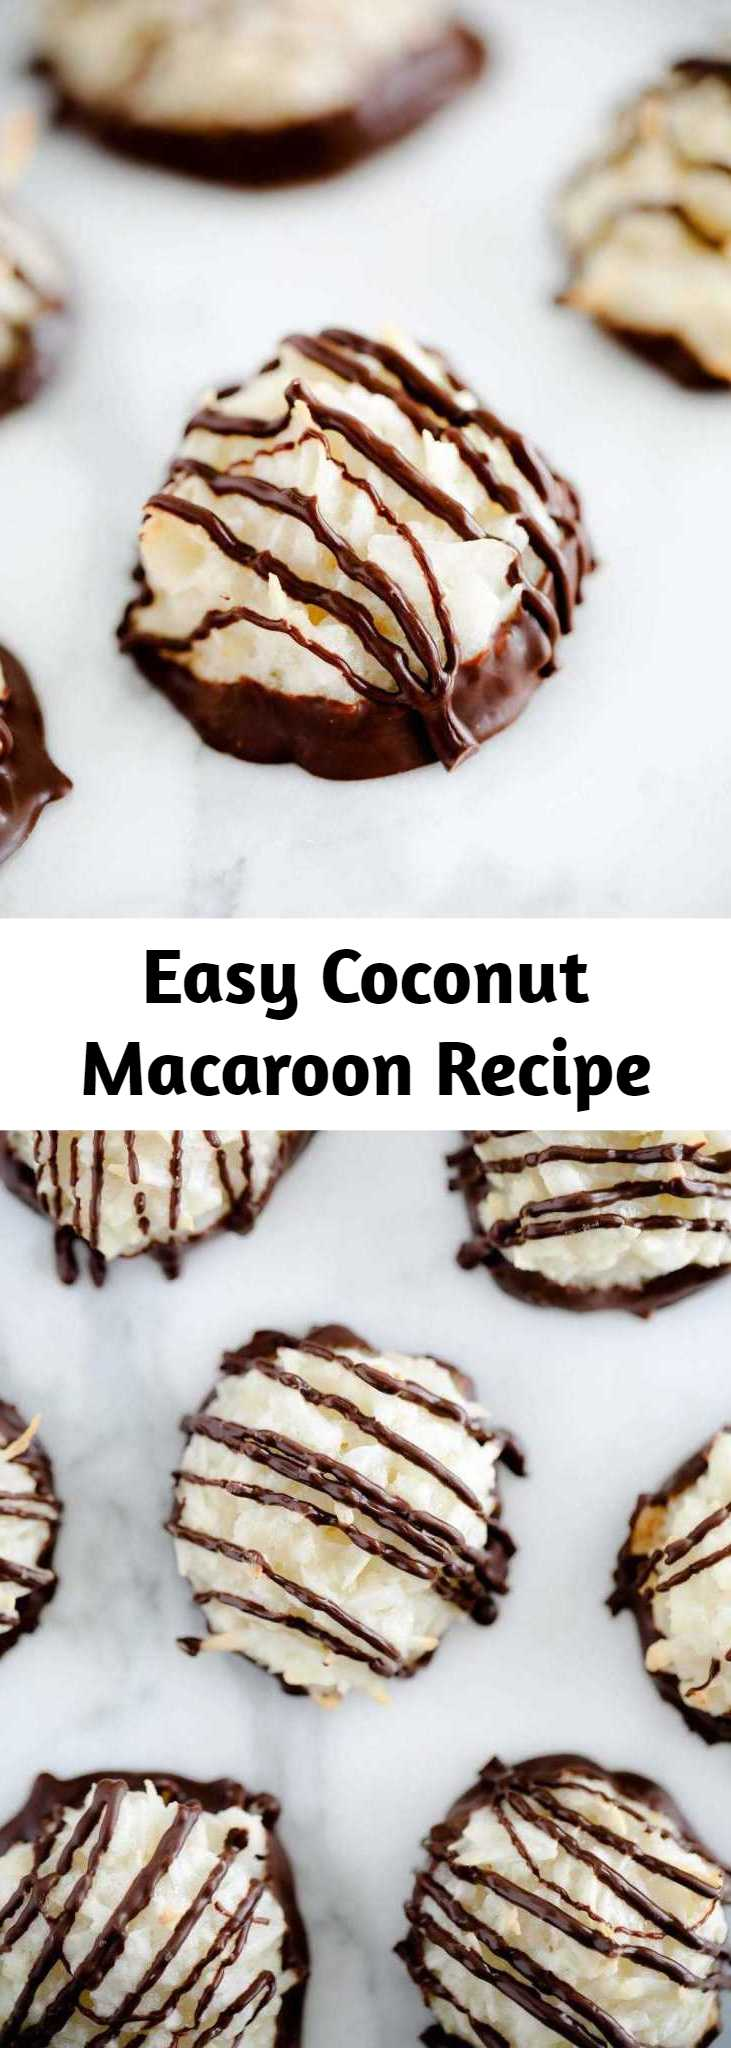 Easy Coconut Macaroons - Soft, chewy and full of coconut flavor. So simple to make…you only need 6 ingredients and one bowl! You can make them plain or dip them in chocolate for an added touch!